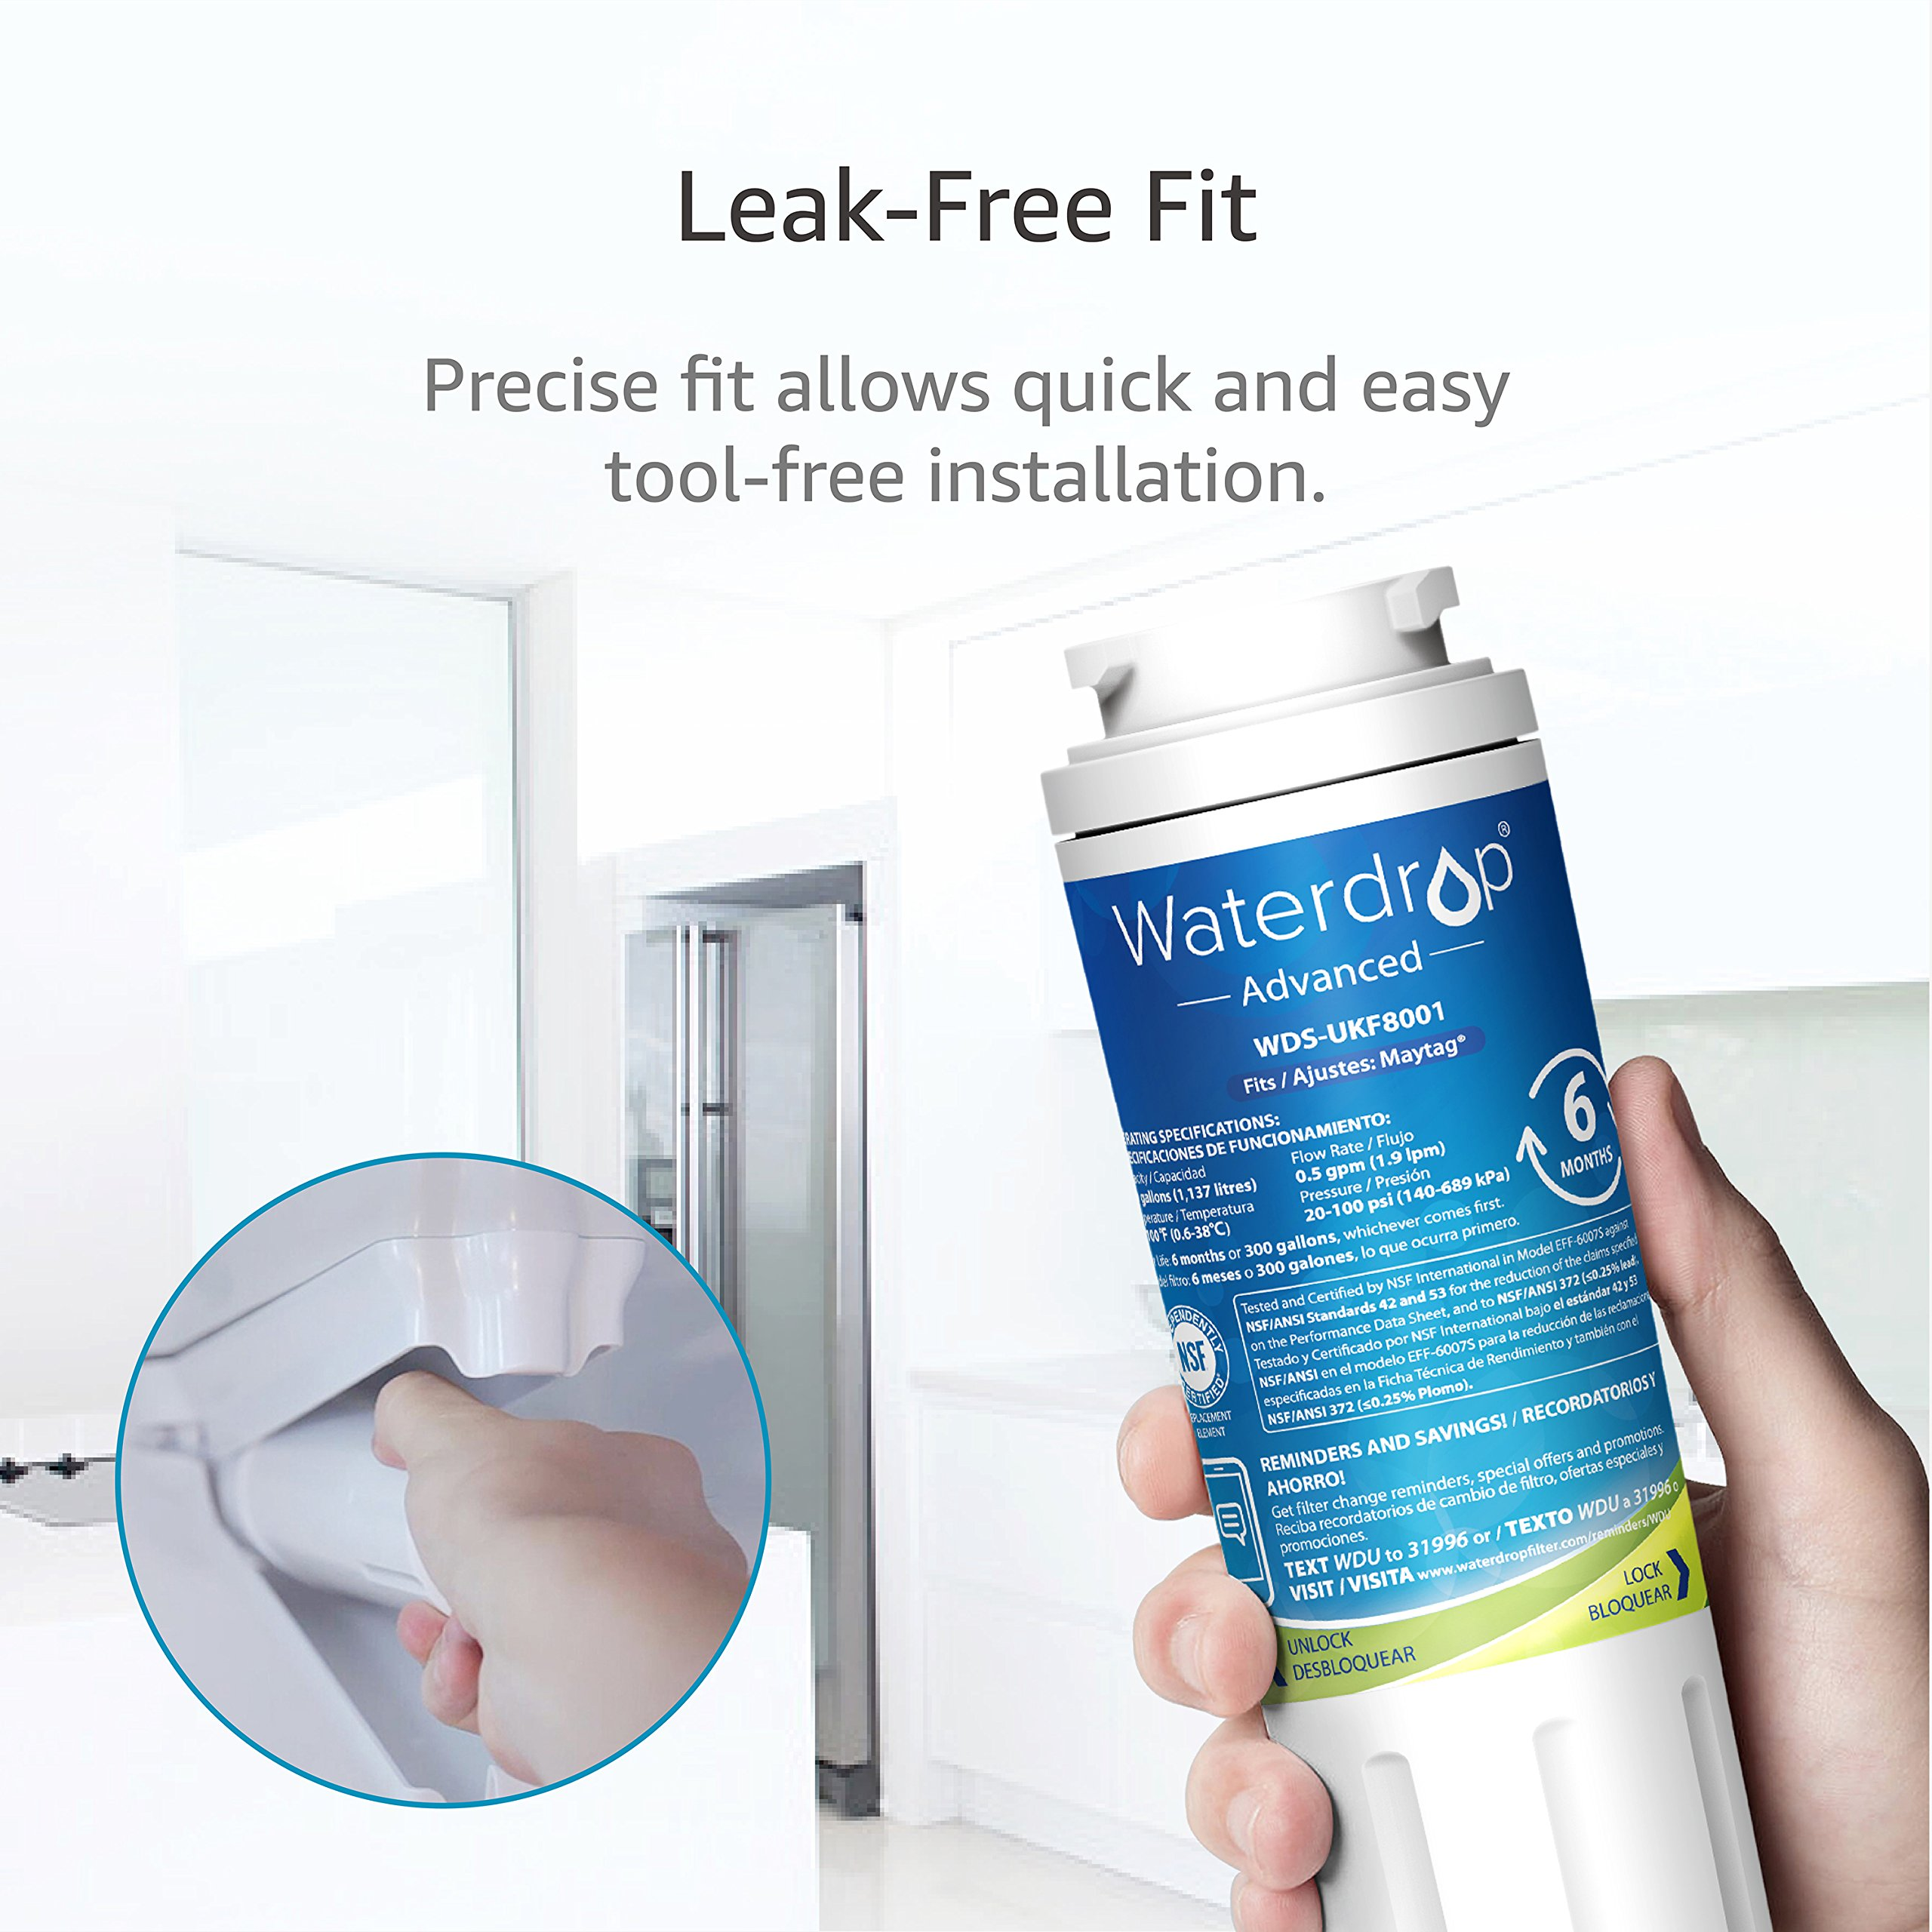 Waterdrop NSF 53&42 Certified UKF8001 Replacement Refrigerator Water Filter  Compatible with Maytag UKF8001, UKF8001AXX, Whirlpool 4396395, 469006,